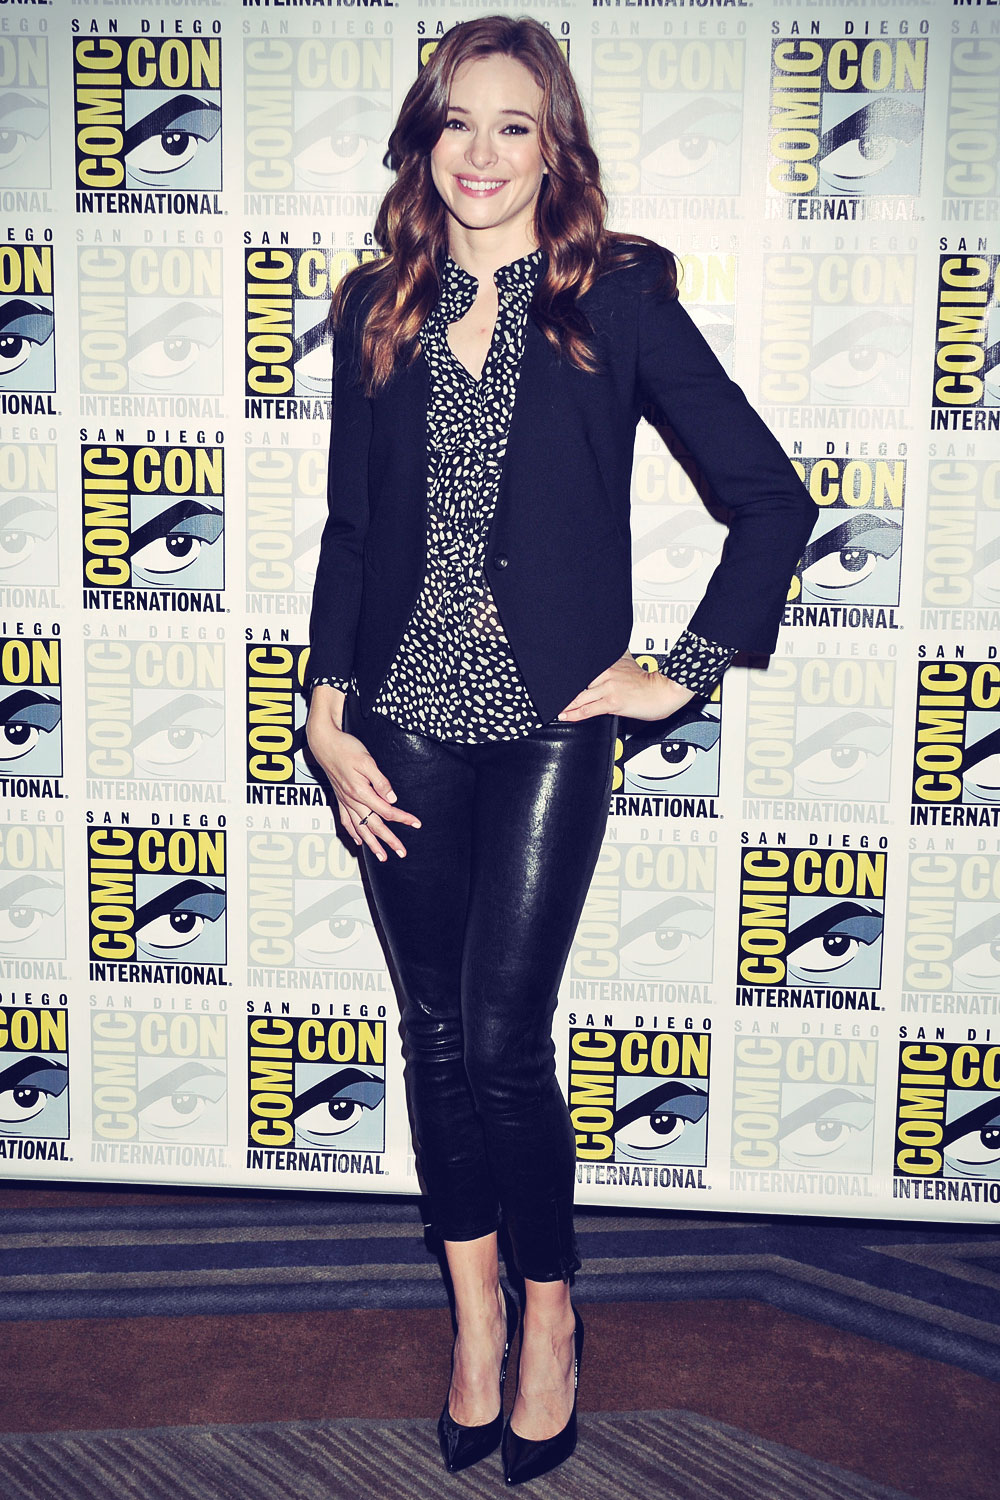 Danielle Panabaker attends 2014 Comic-Con